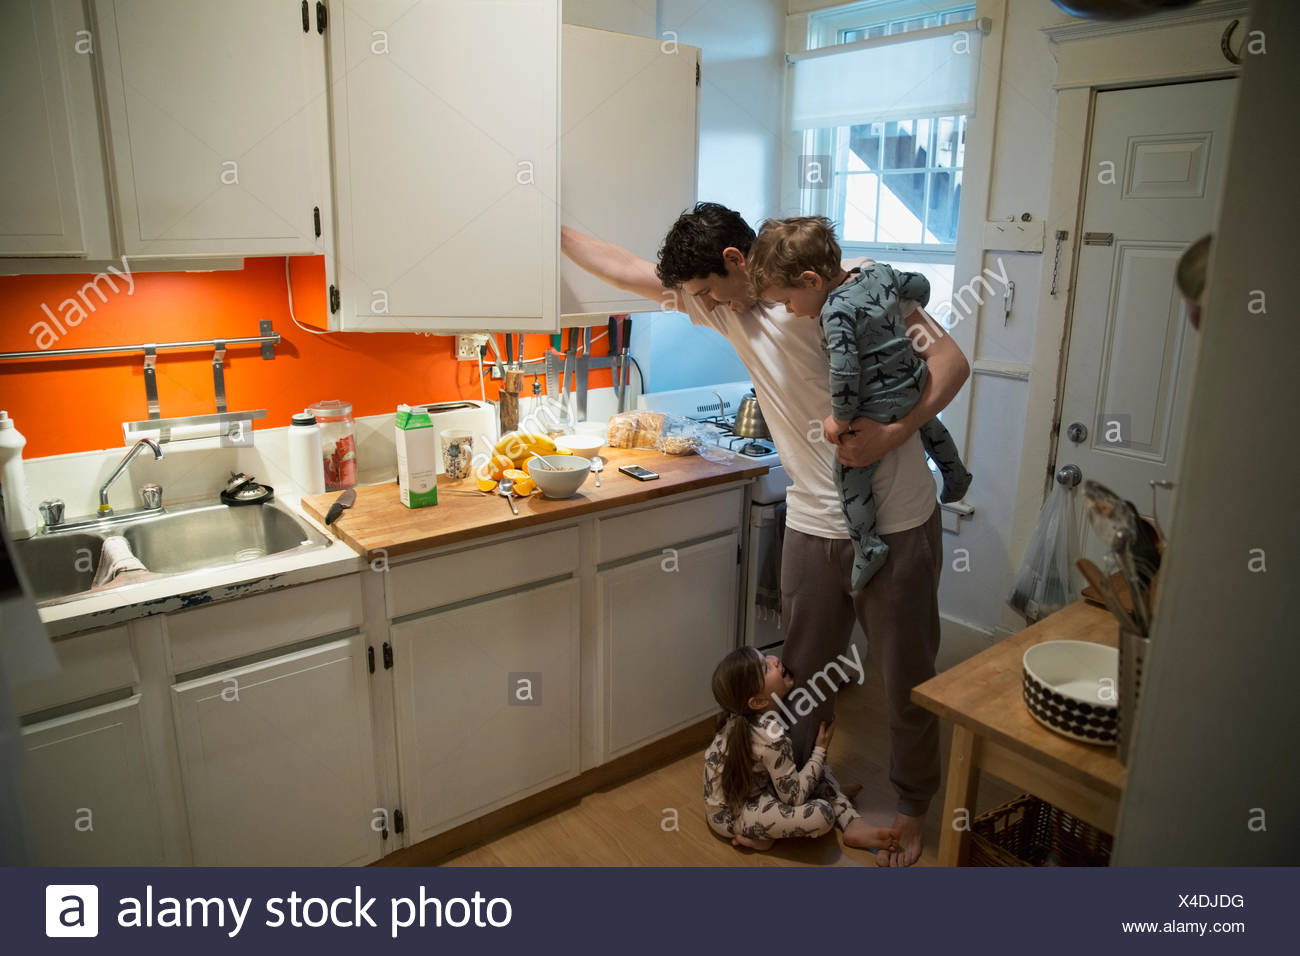 Father and children in pajamas in kitchen - Stock Image